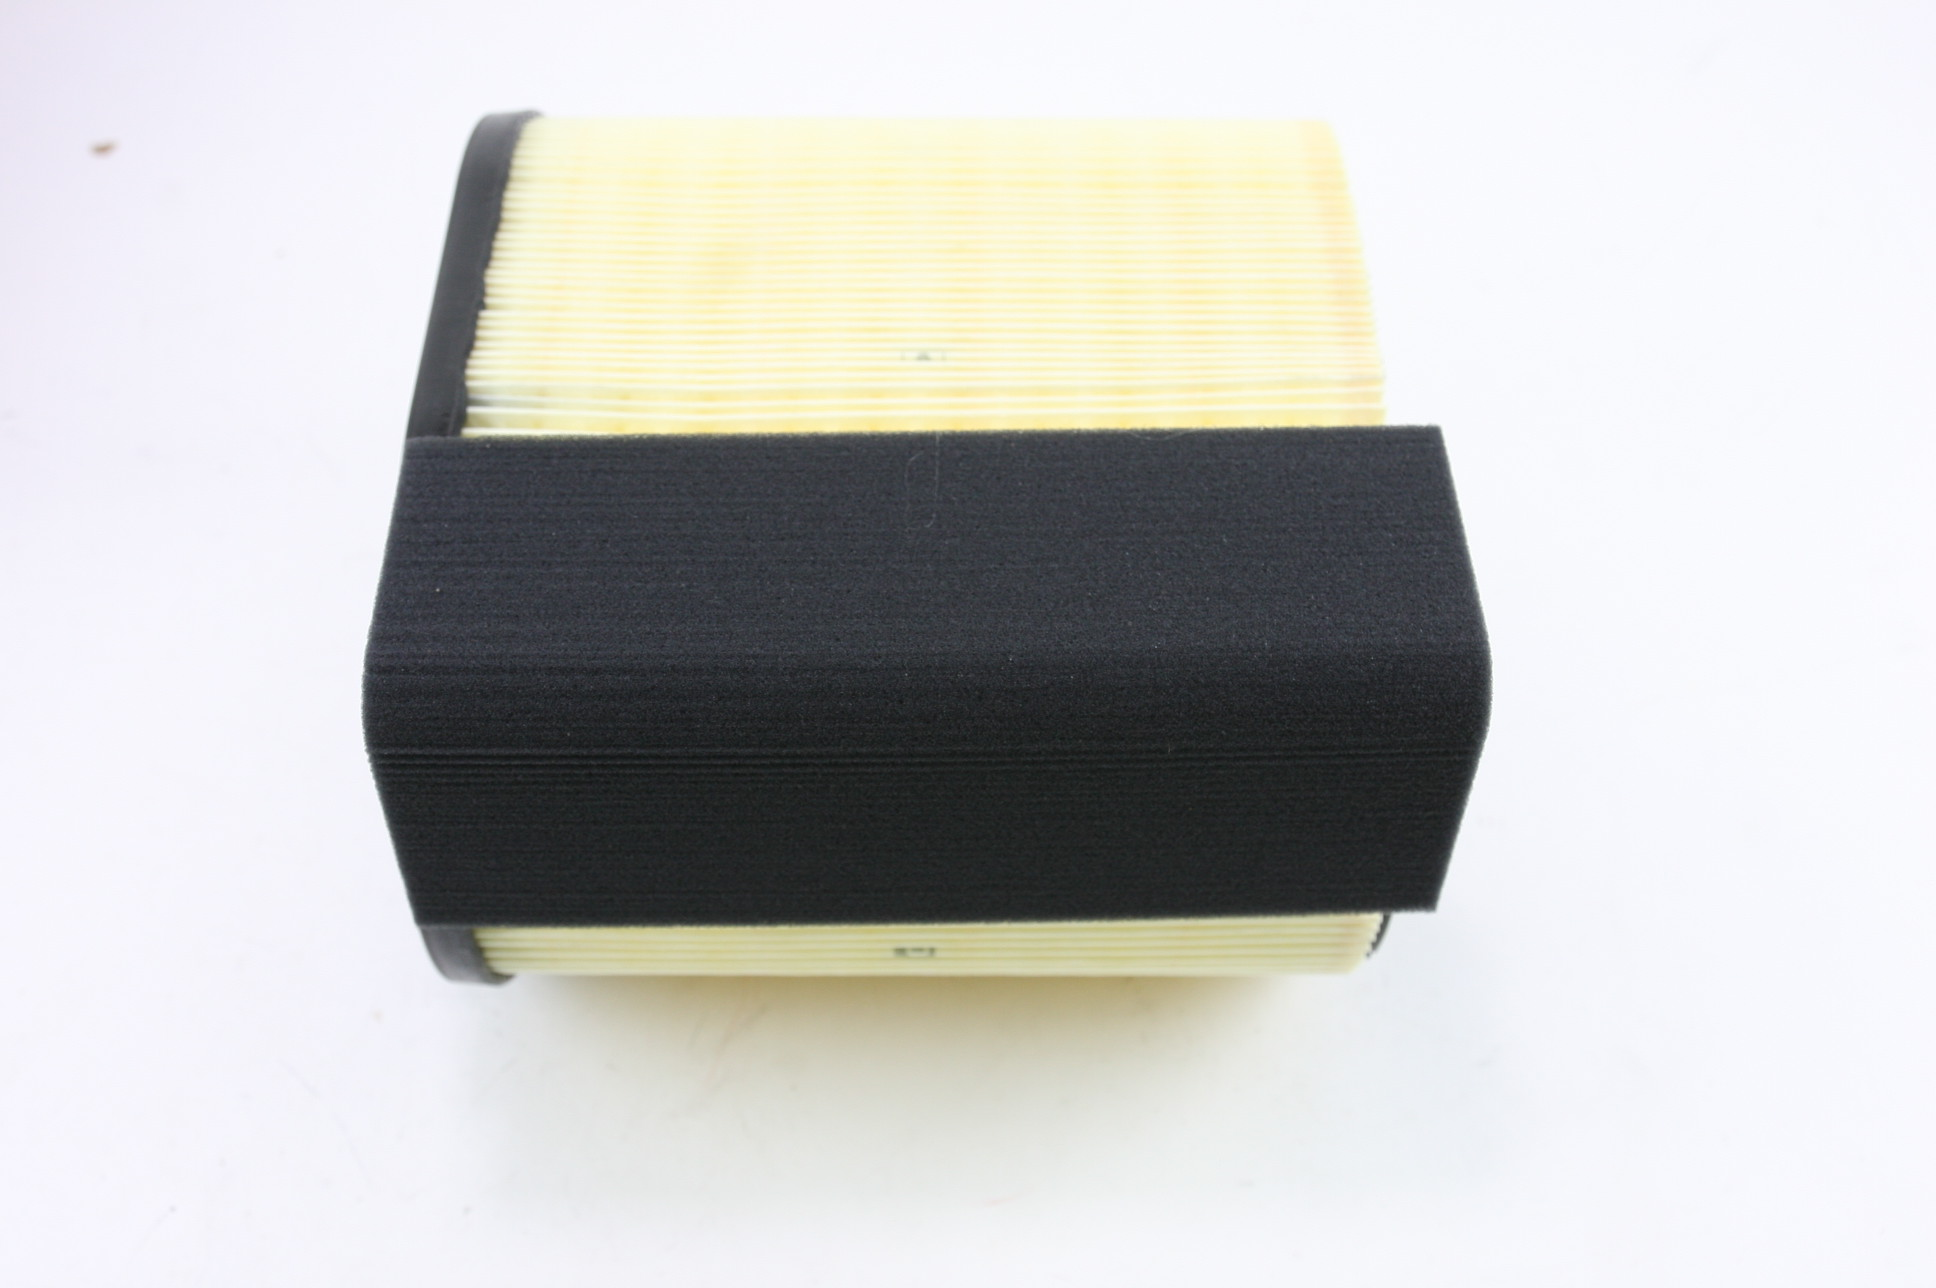 New OEM Motorcraft FA1927 Ford HC3Z9601A Powerstroke Diesel Air Filter Free Ship - image 8